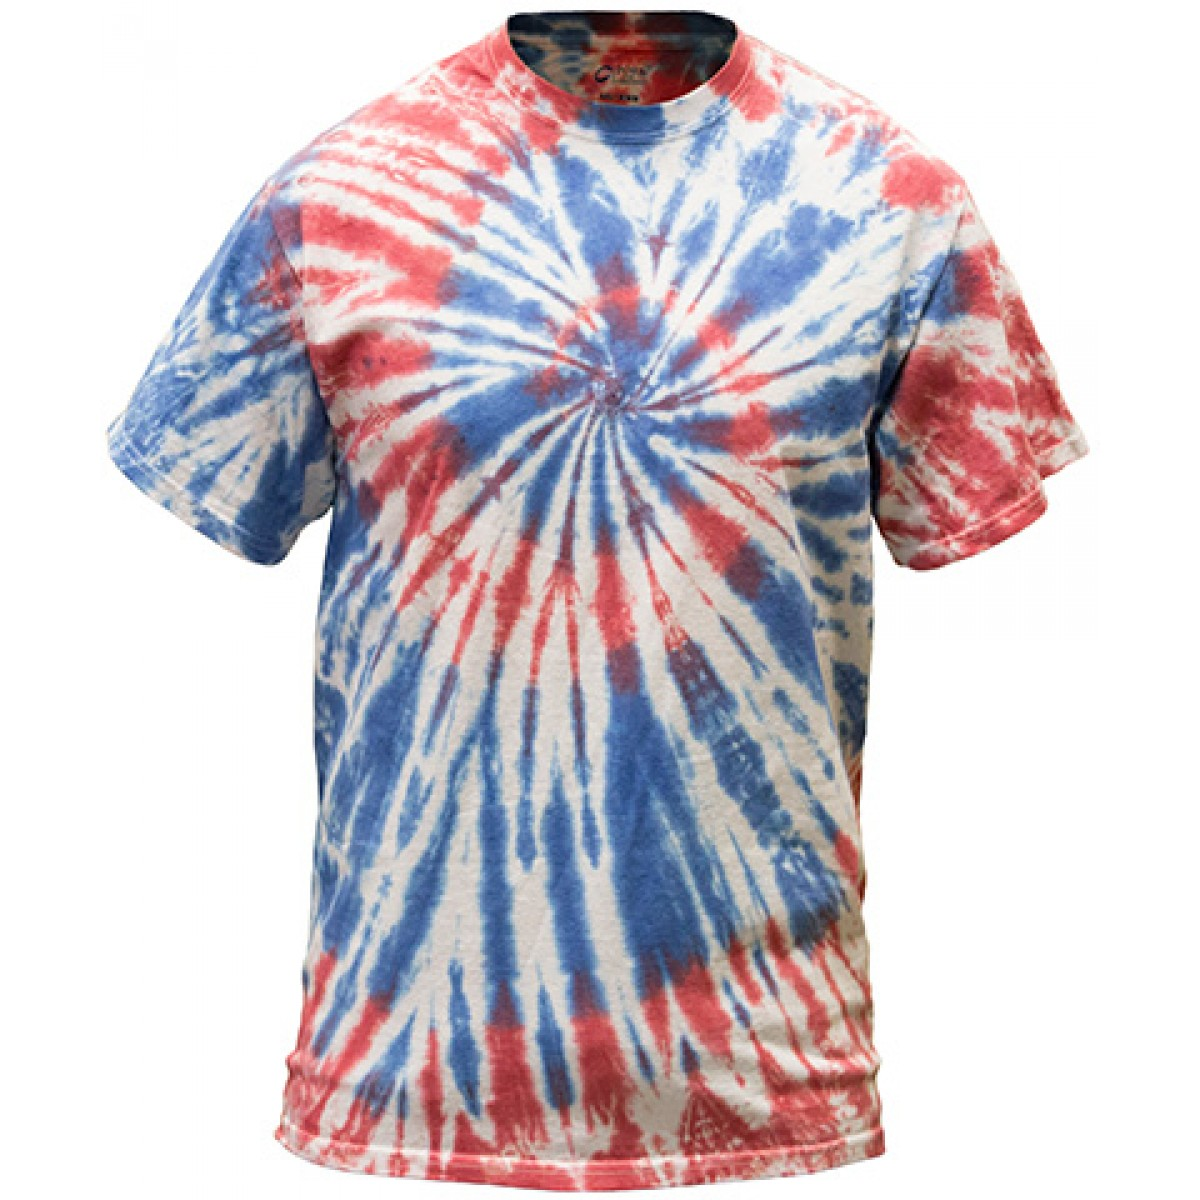 Multi-Color Tie-Dye Tee -Red/White/Blue-XL